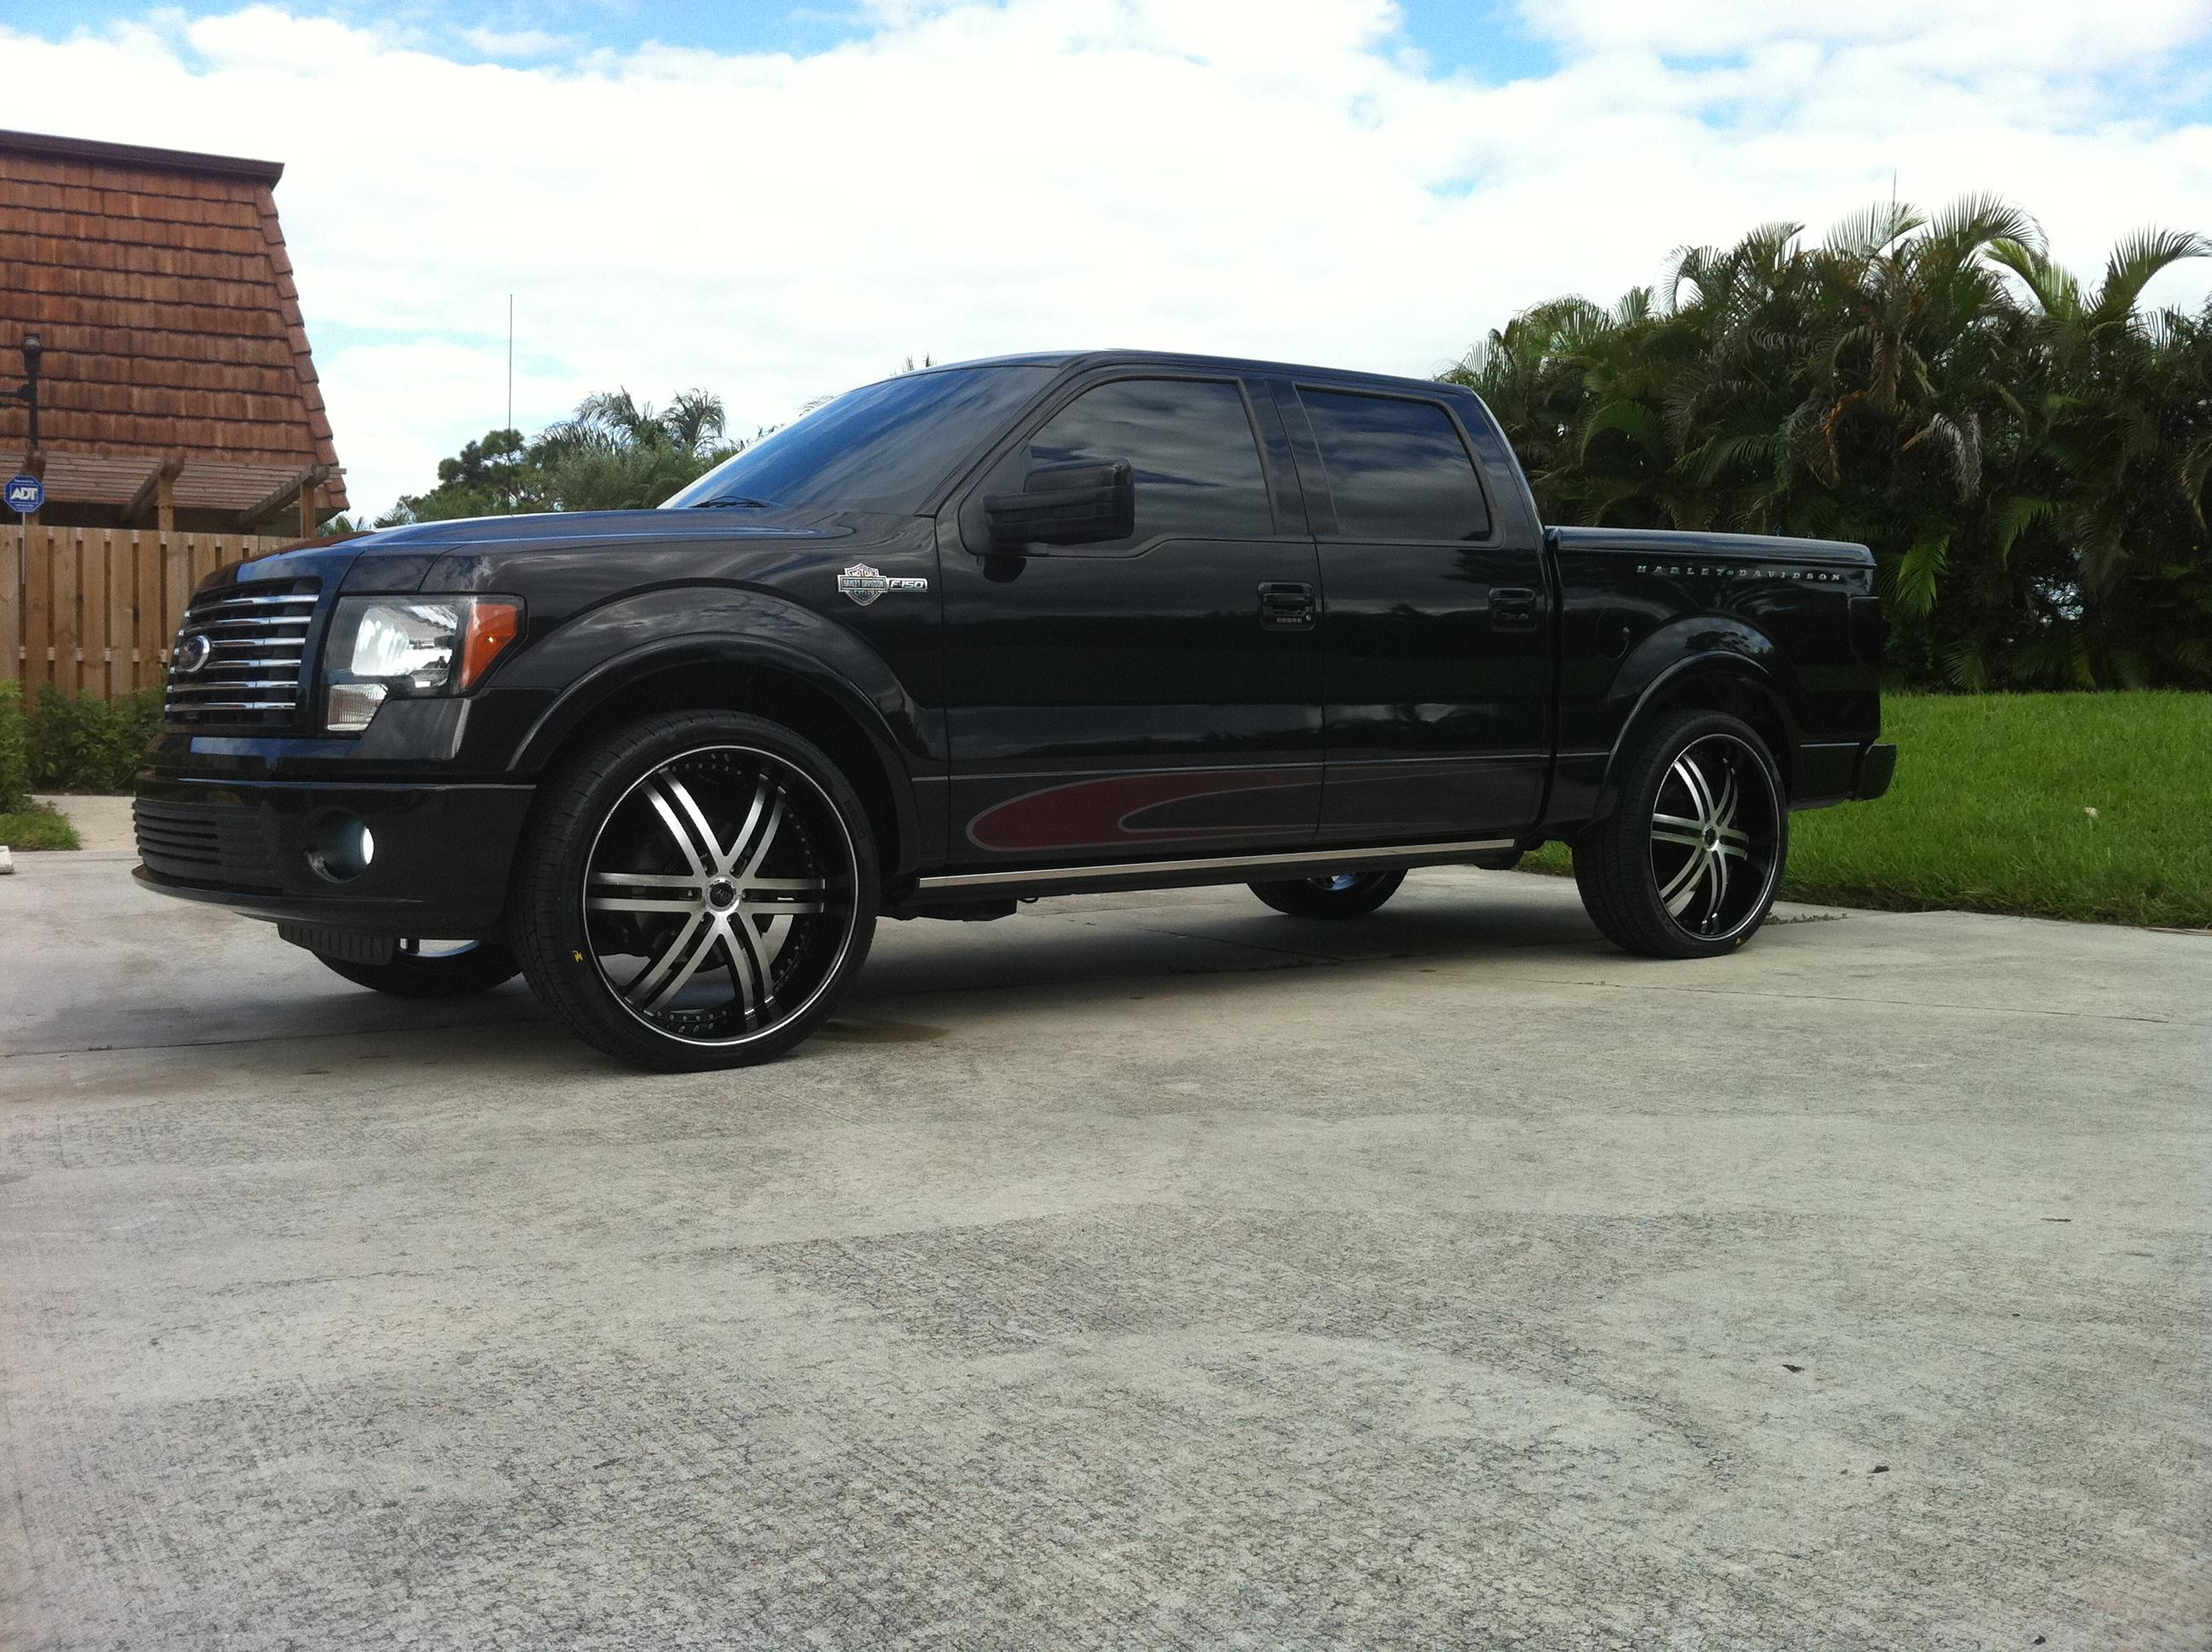 26 Inch Rims : Inch rims for ford f